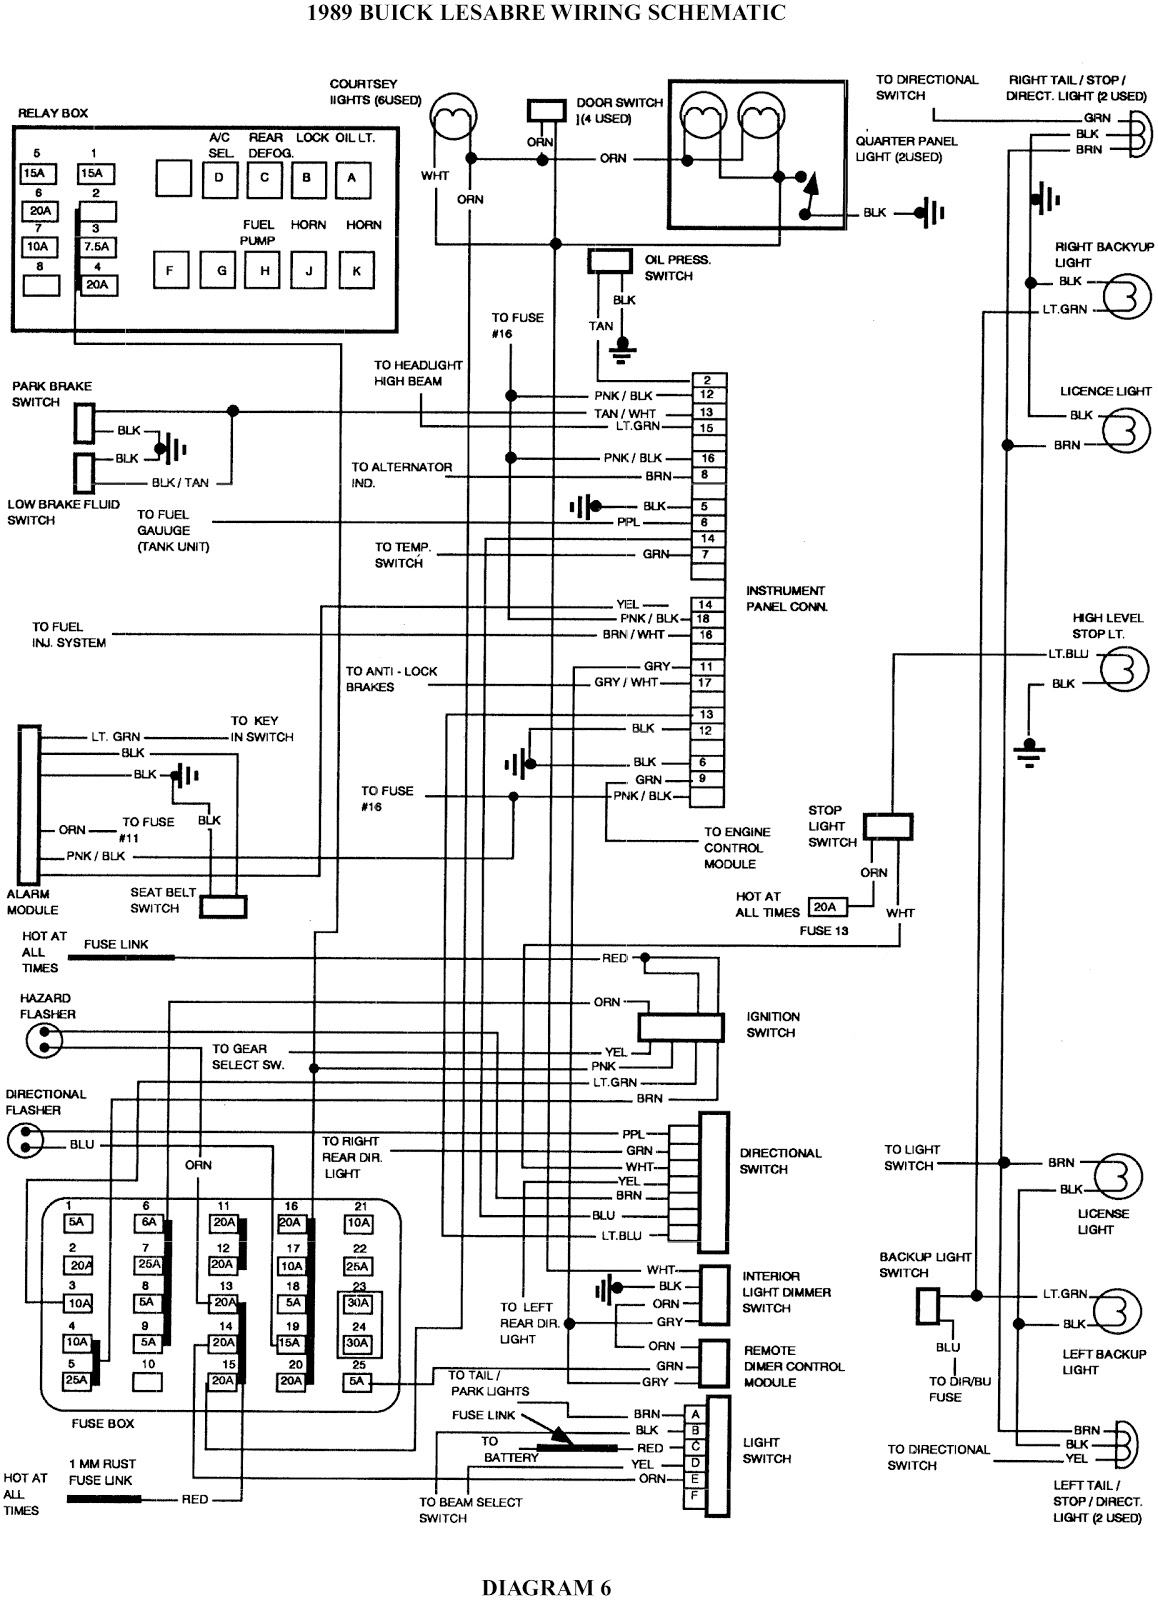 amplifier and speaker diagrama de cableado